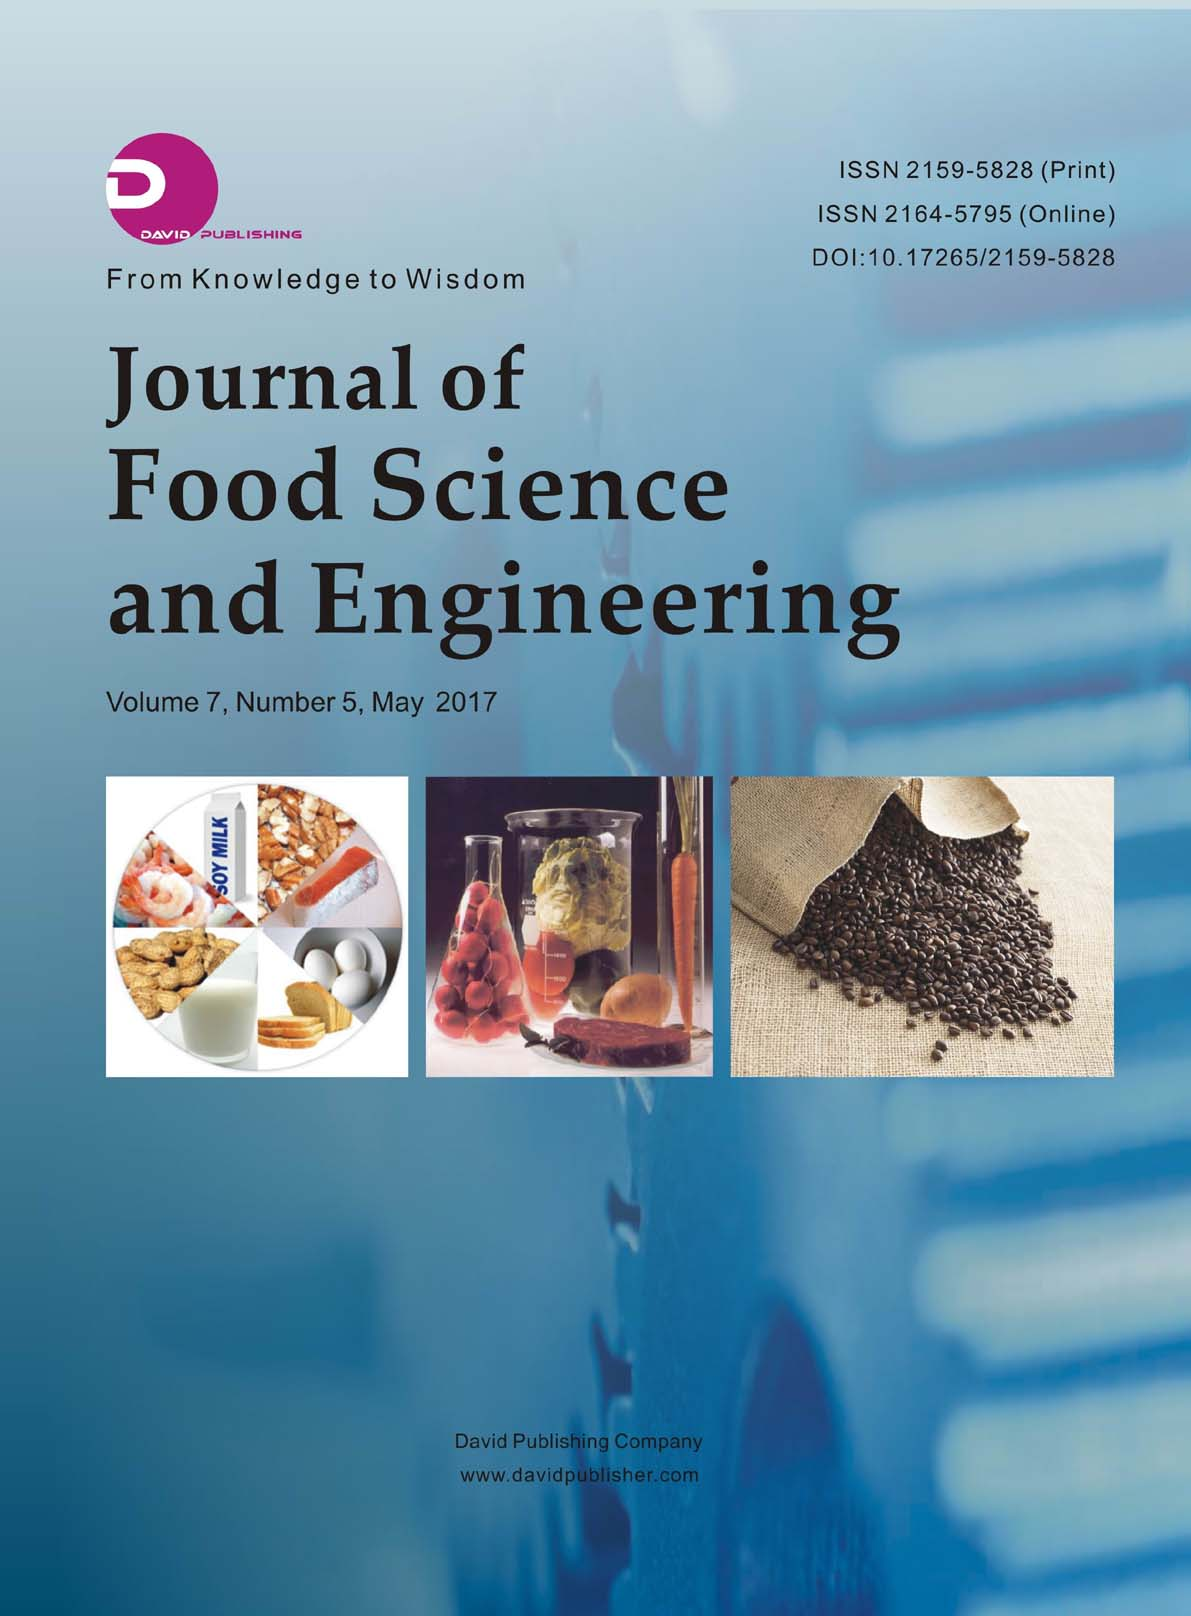 Journal of Food Science and Engineering